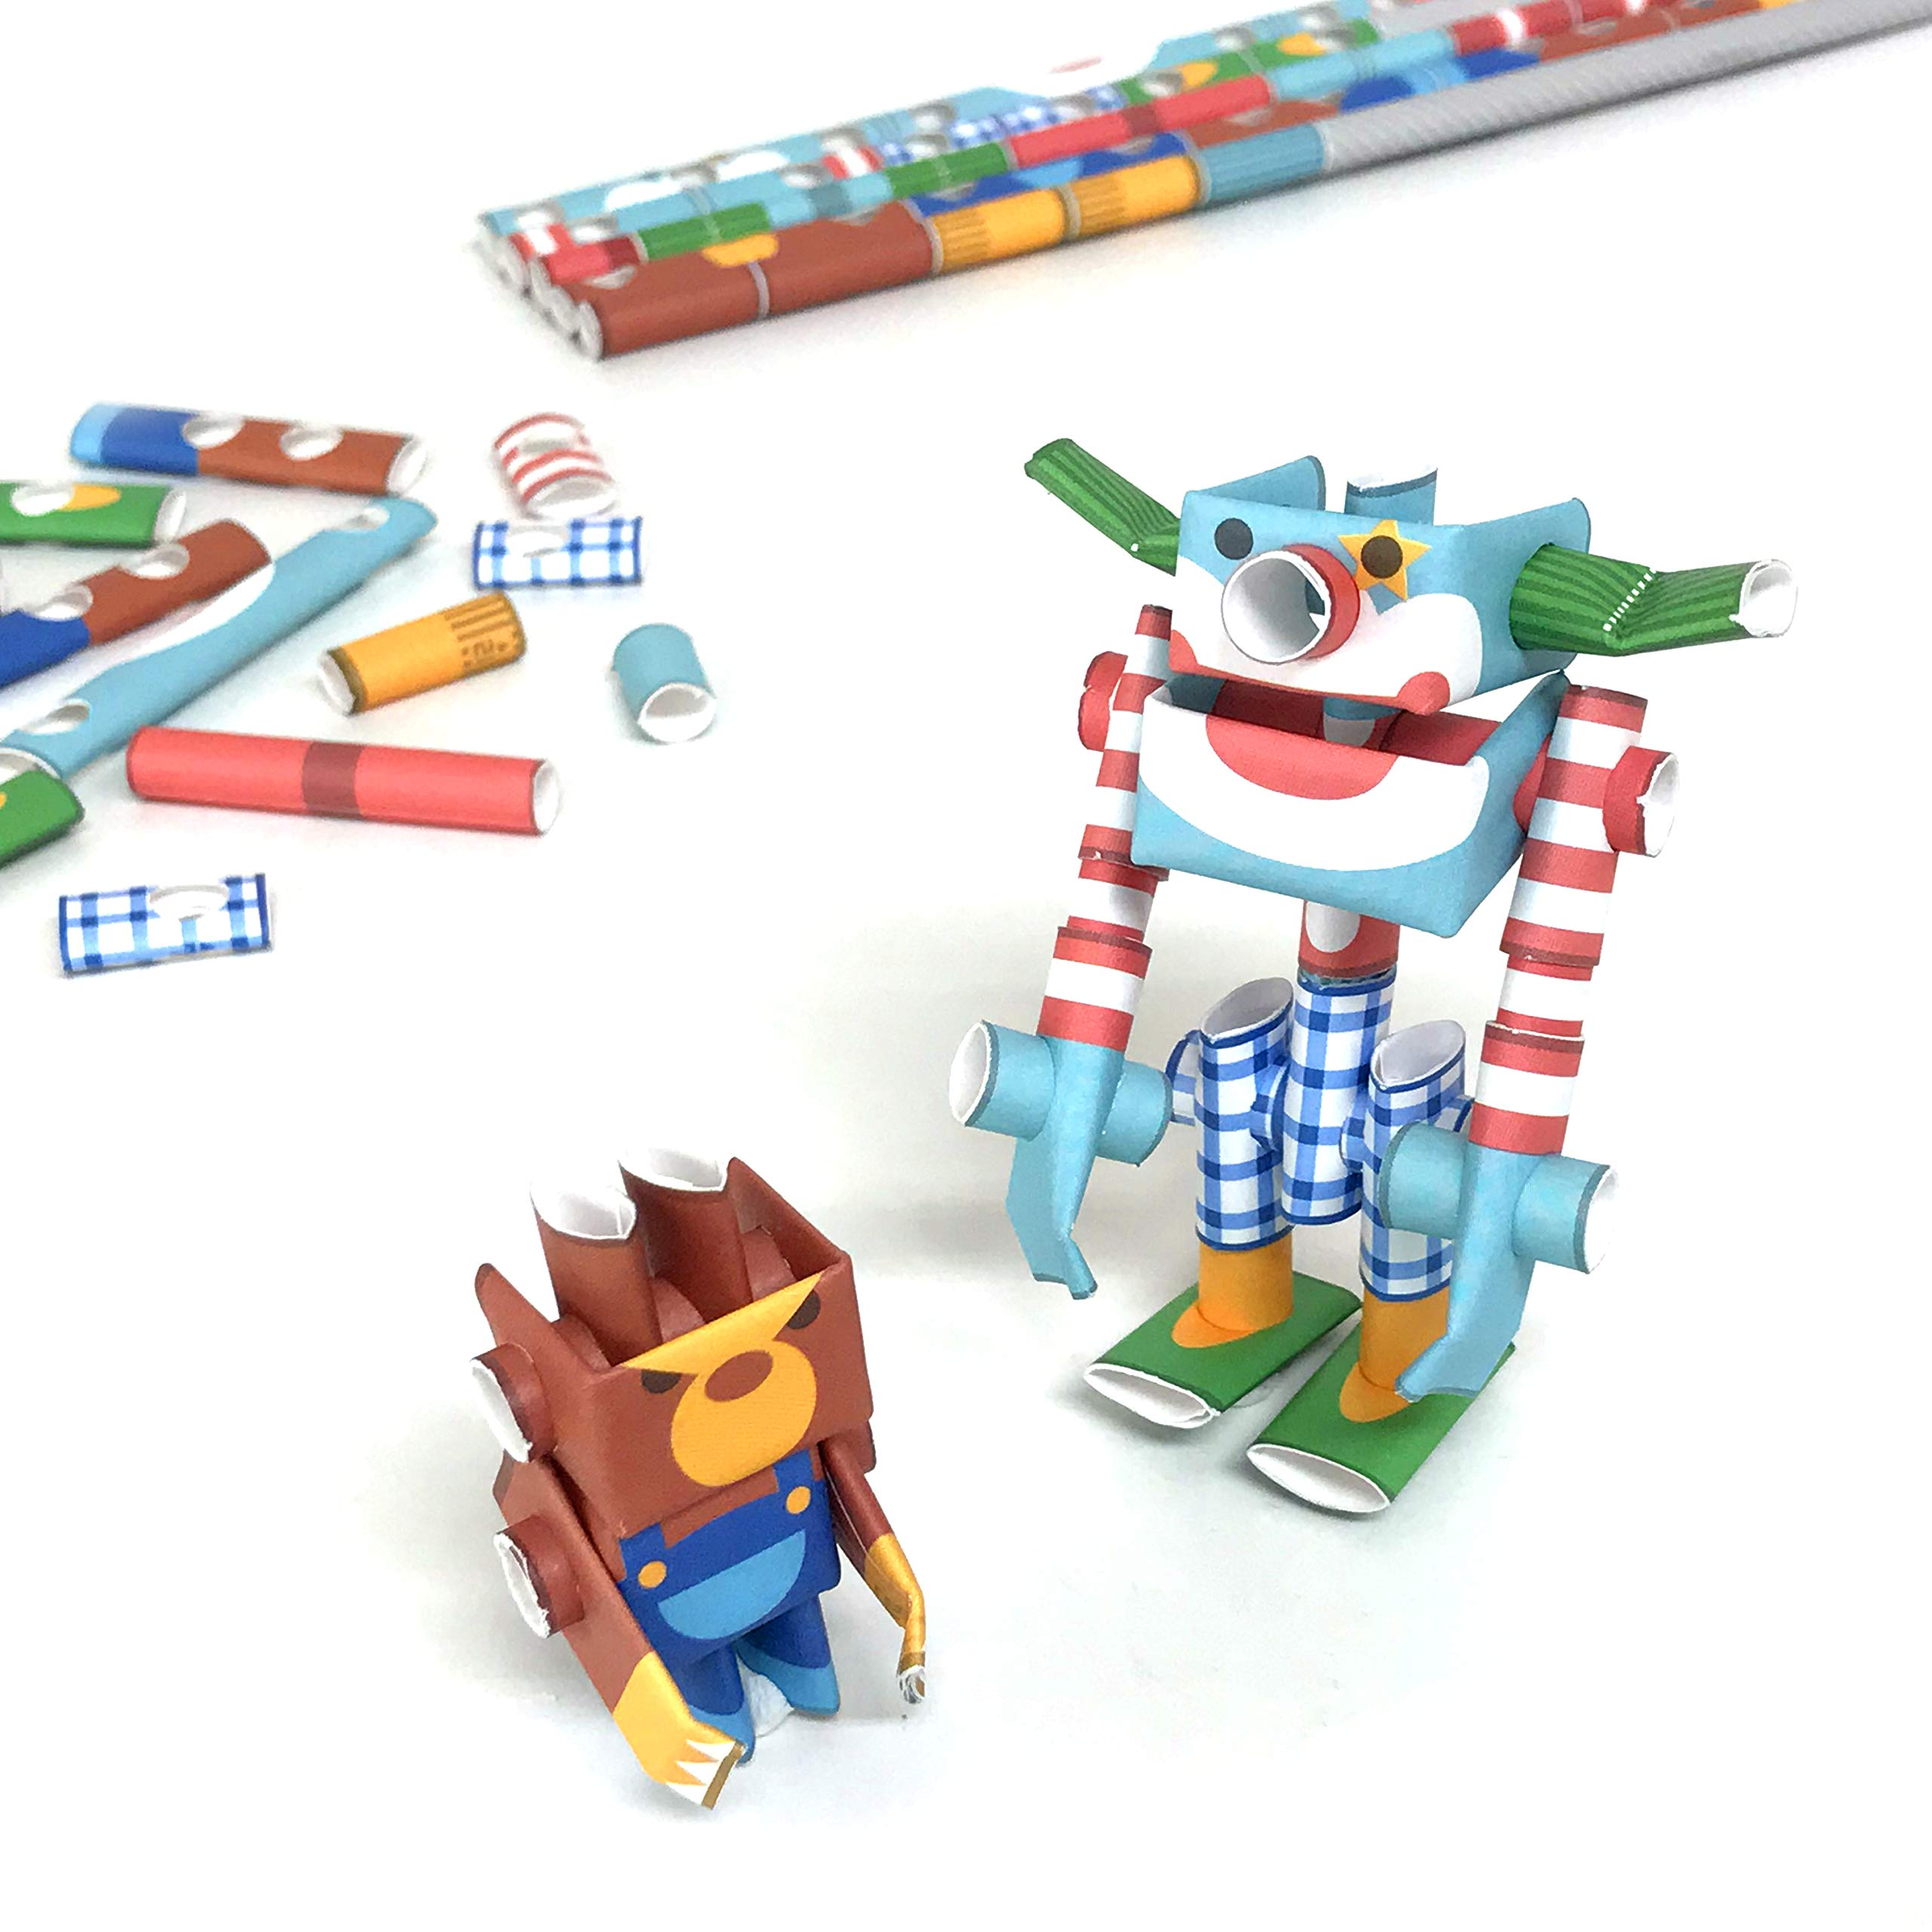 PIPEROID DIY Paper Craft Kit Funny & Angry Circus Duo - Japanese Arts and Craft Kit for Kids and Adults - Birthday Gift and Party Favor for 3D Puzzle and Origami Paper Craft Enthusiasts